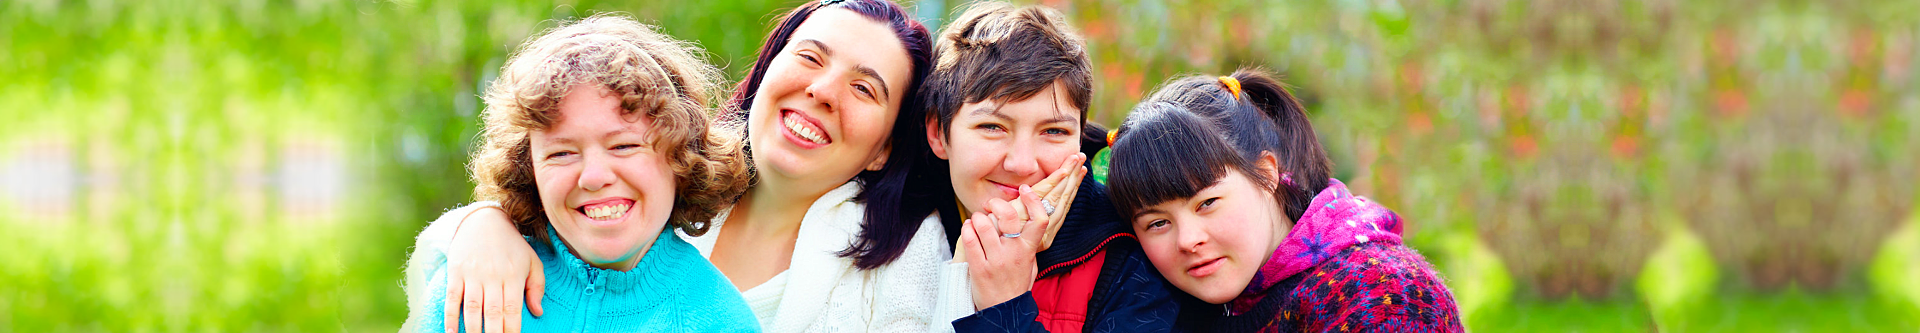 four woman with disability smiling